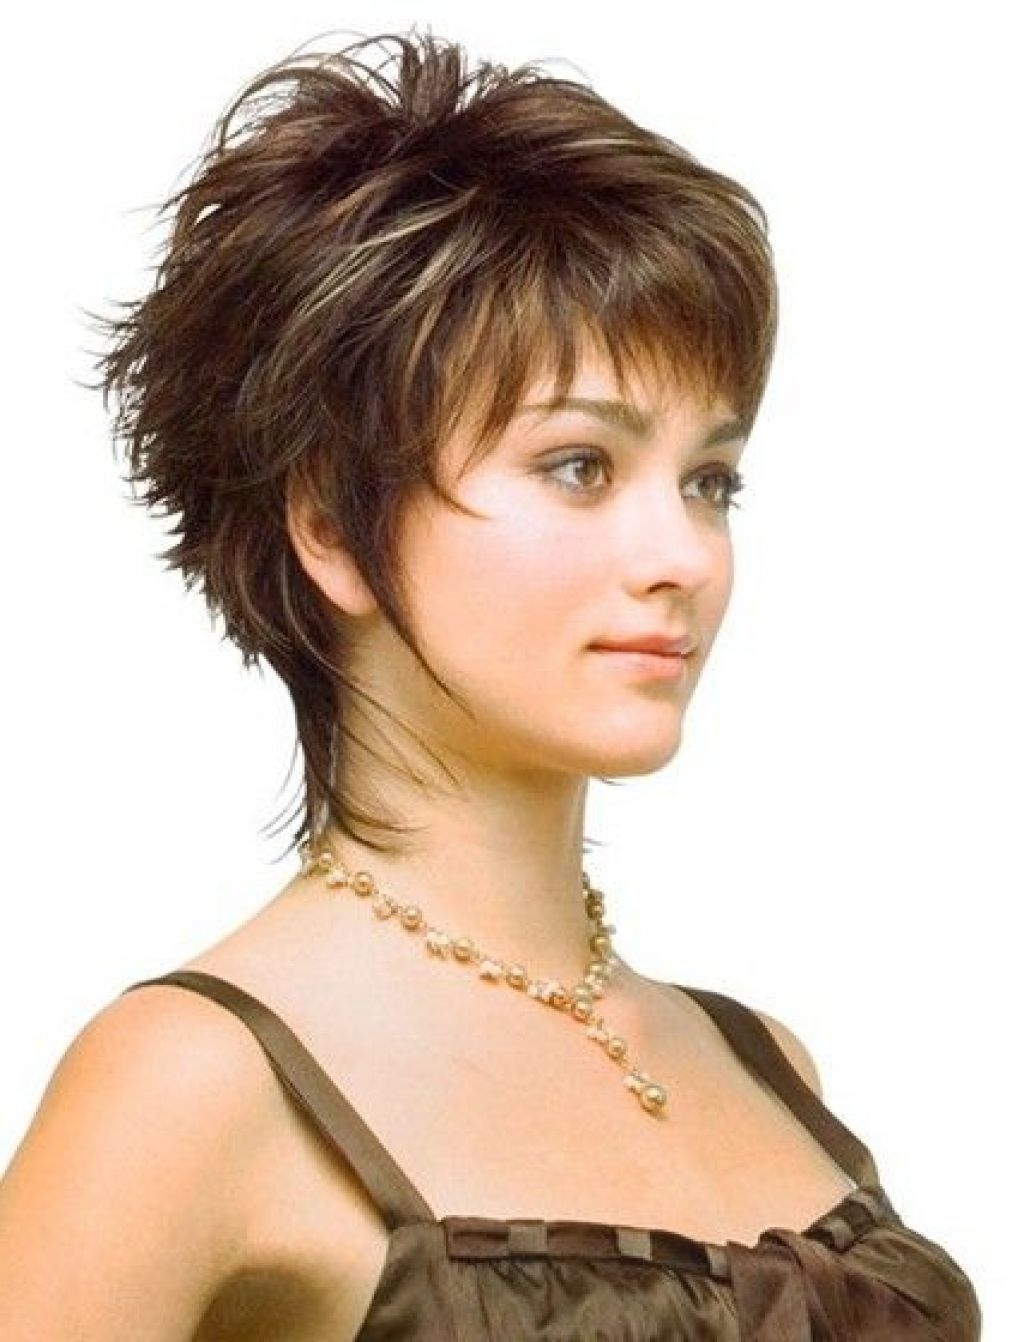 haircuts for fine hair over 60 - google search | short hairstyles